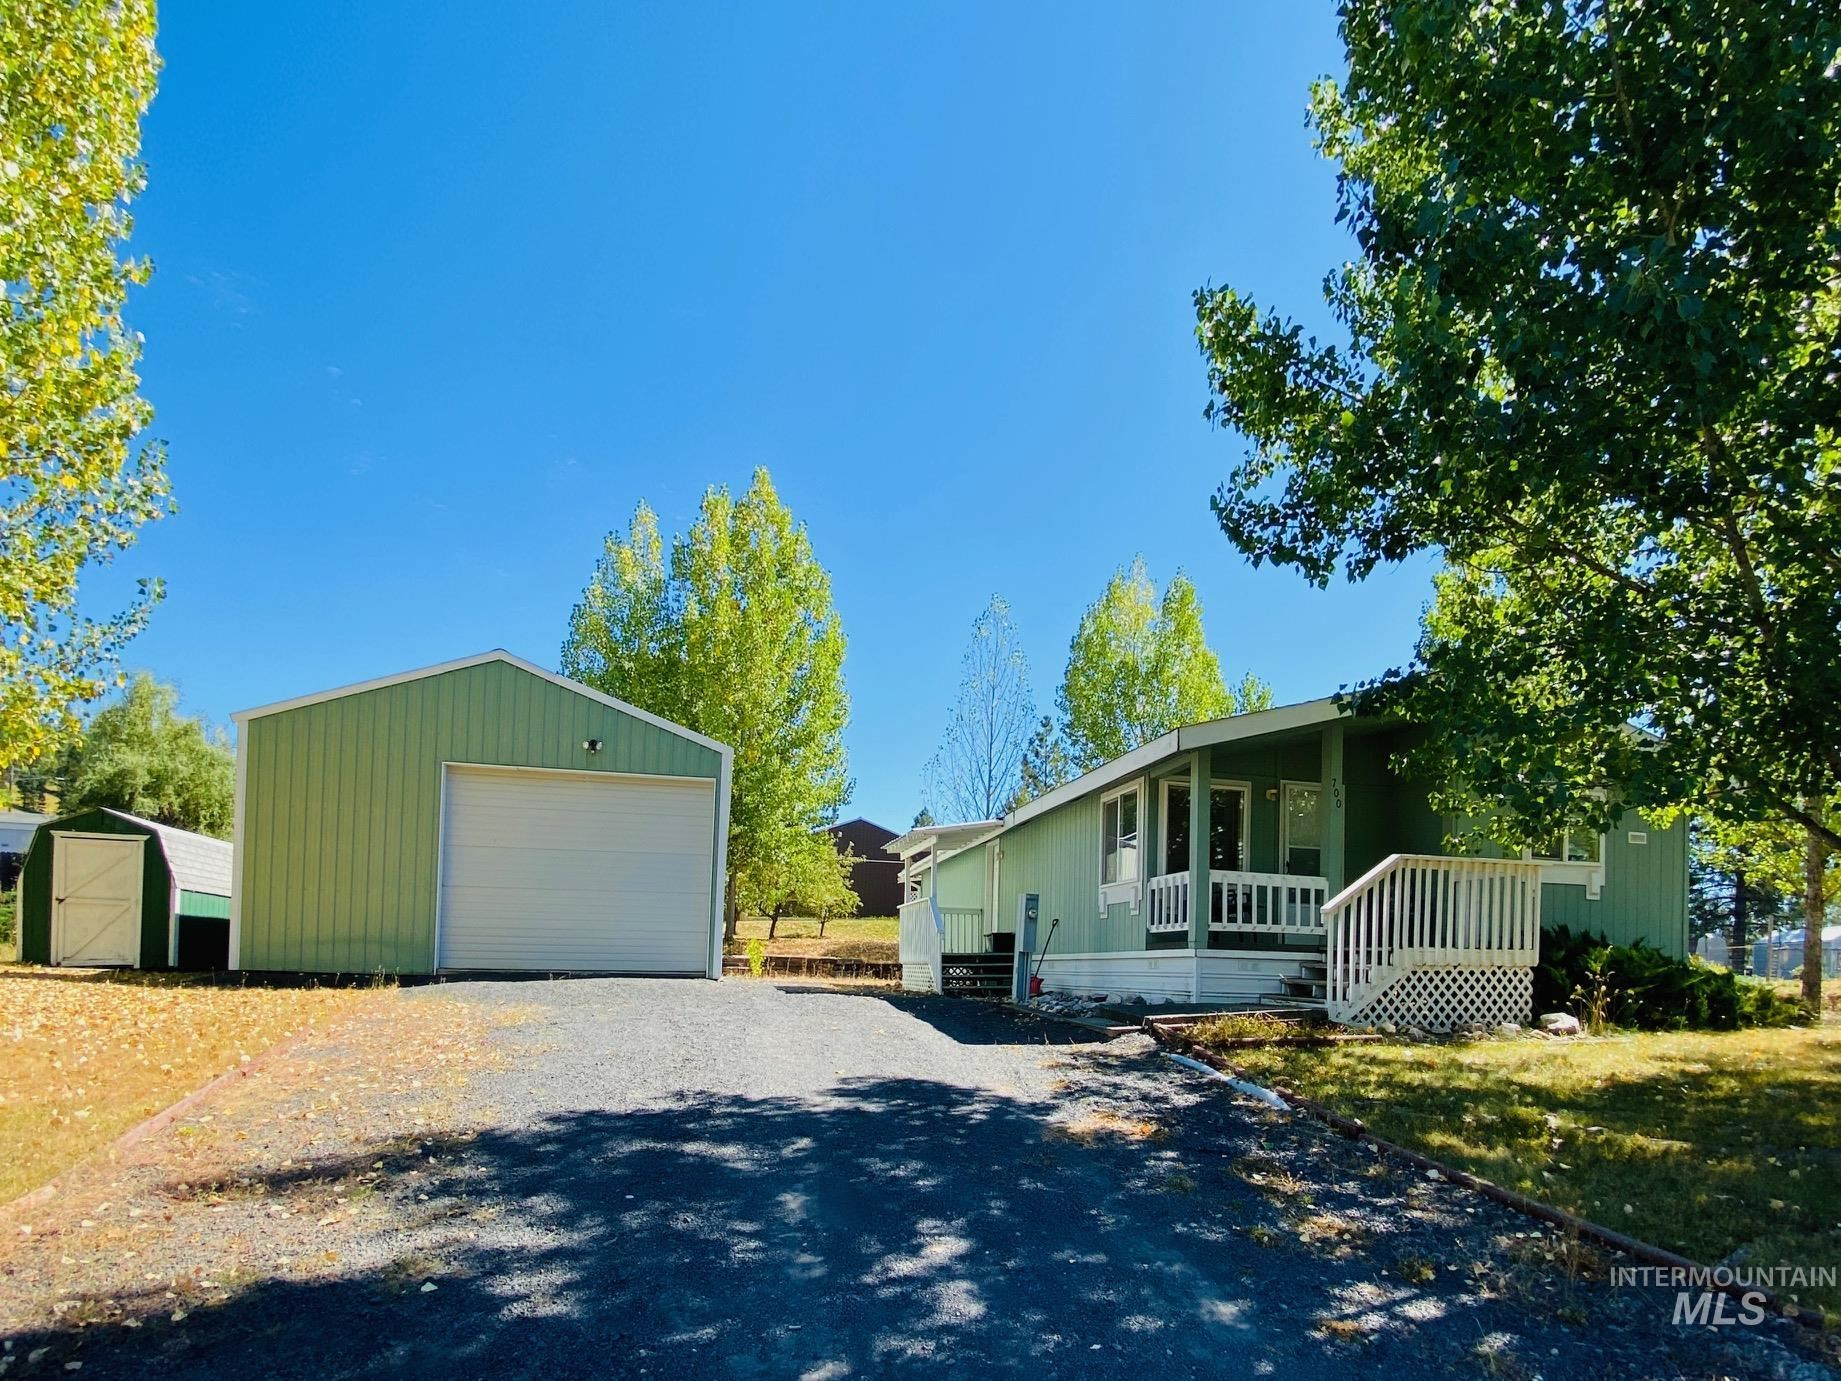 700 Division St, Deary, ID 83823 - MLS#: 98779620